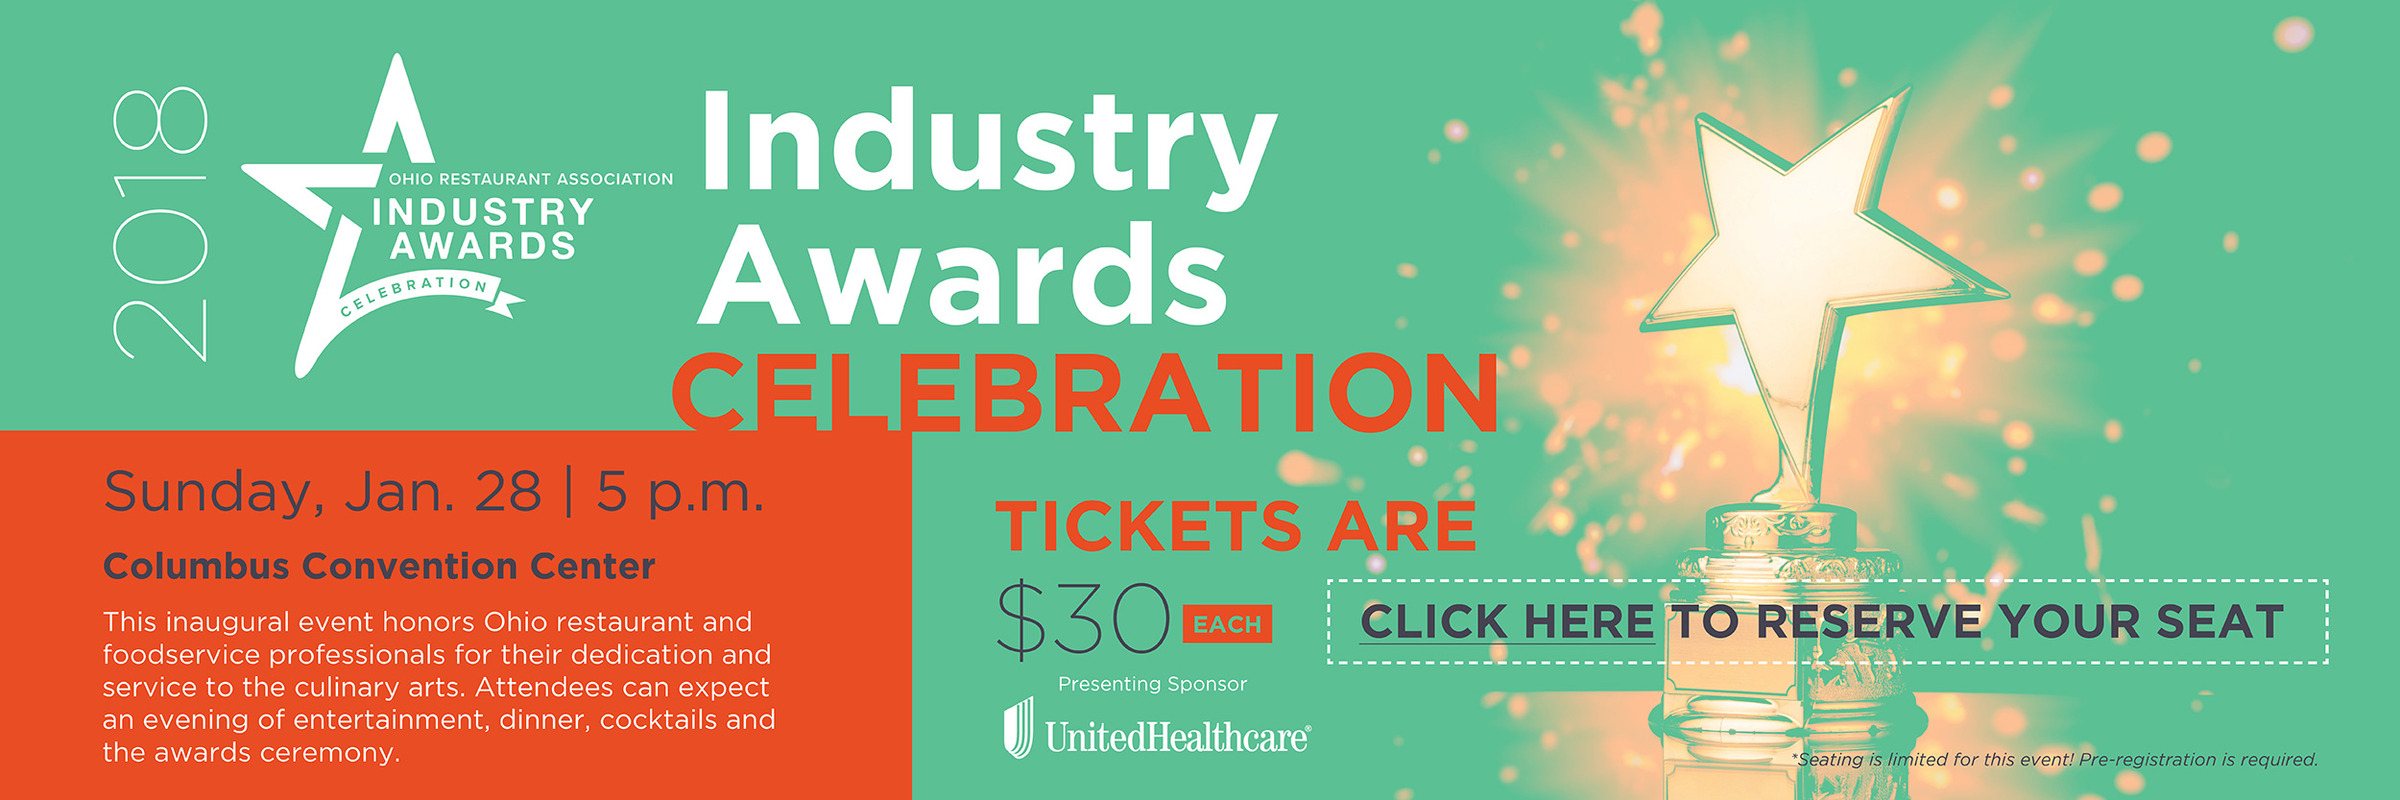 Industry Awards Banner